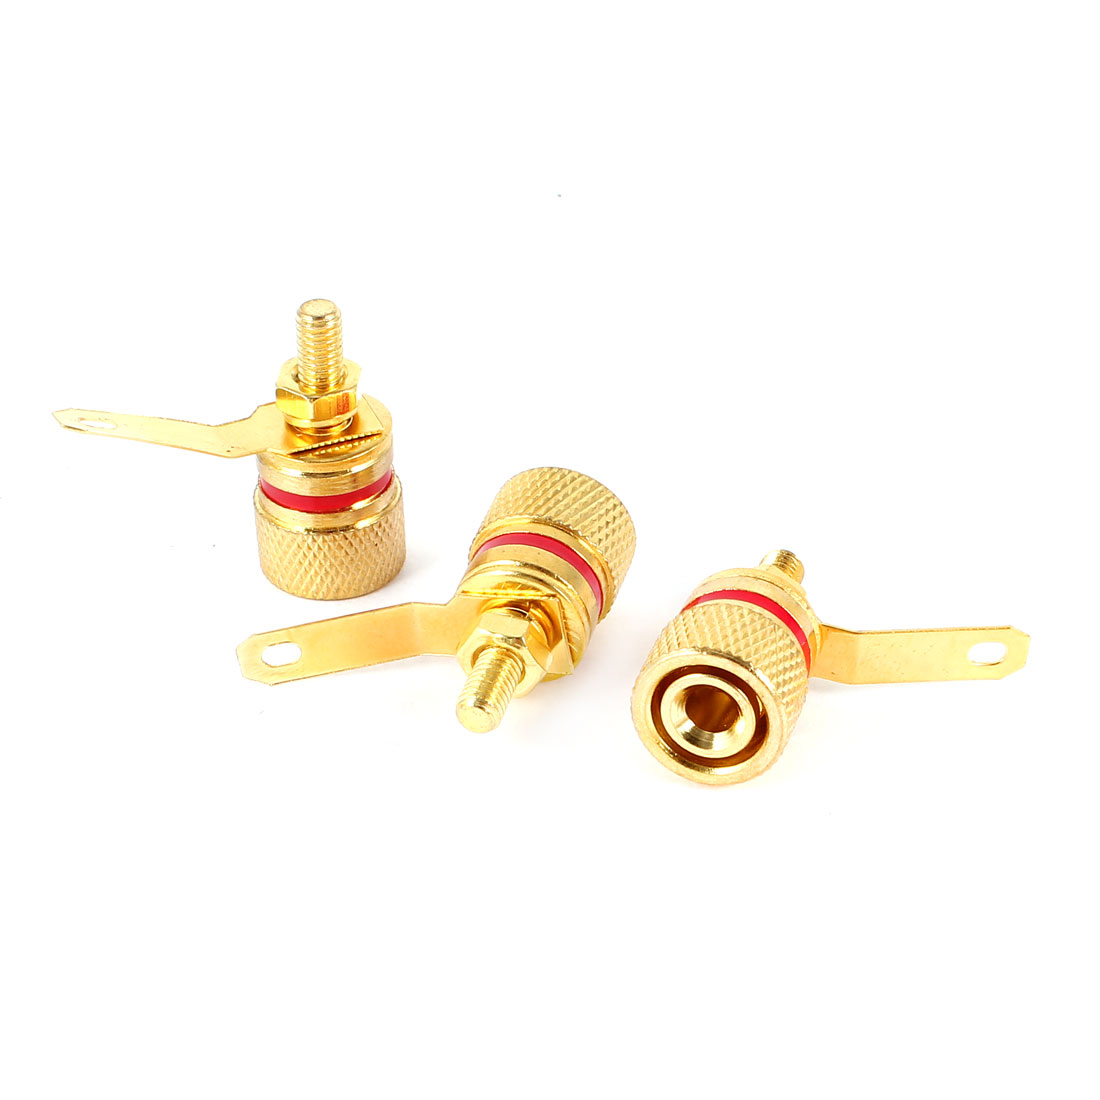 3 Pcs Amplifier 4mm Banana Connector Socket 3.8mm Thread Binding Post Gold Tone